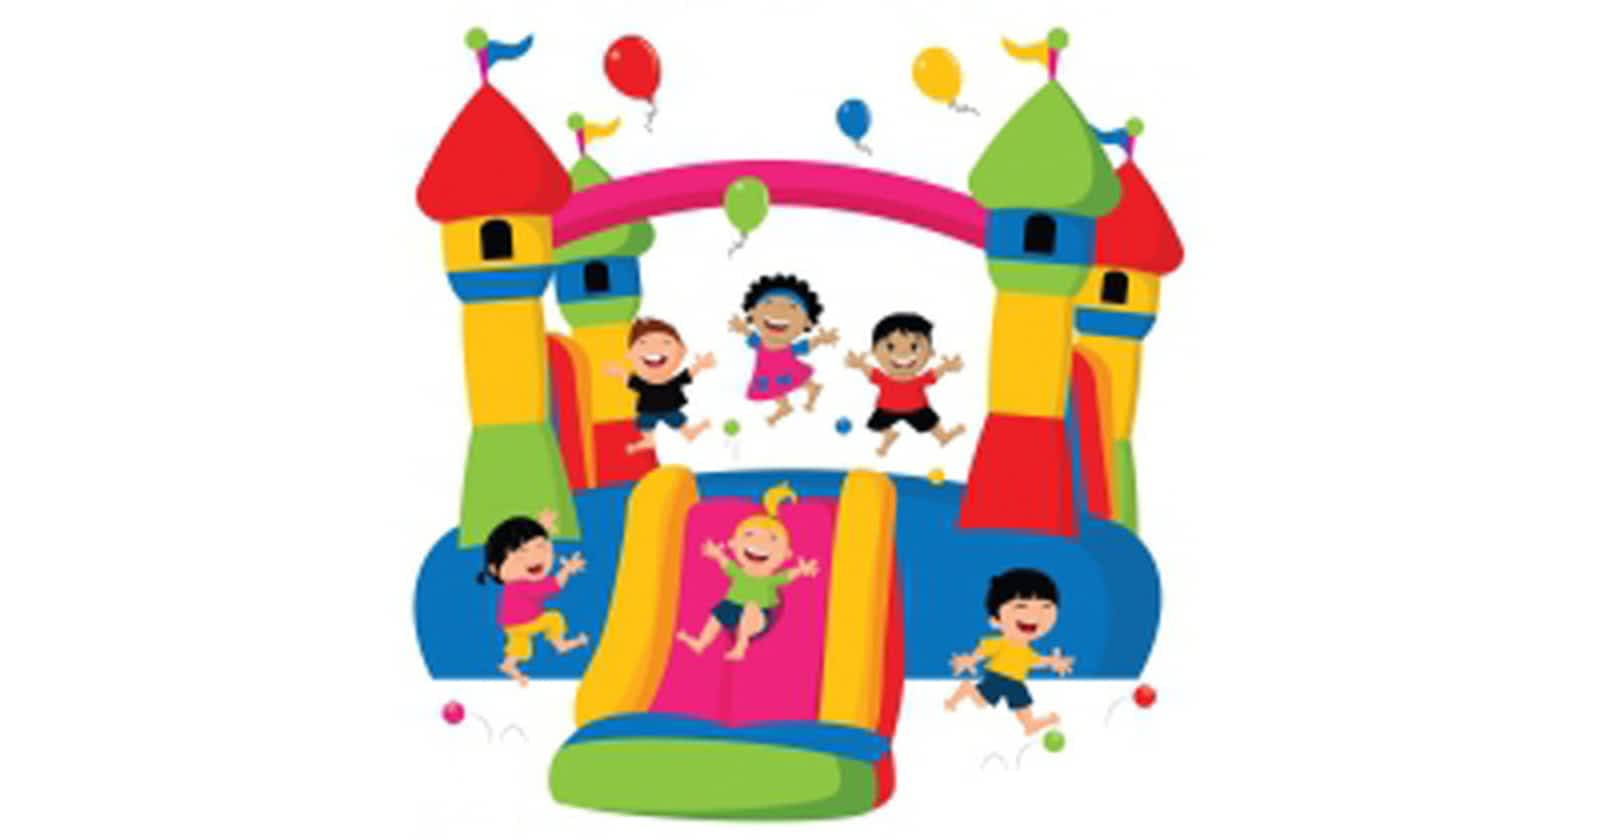 Bouncy House Clipart.